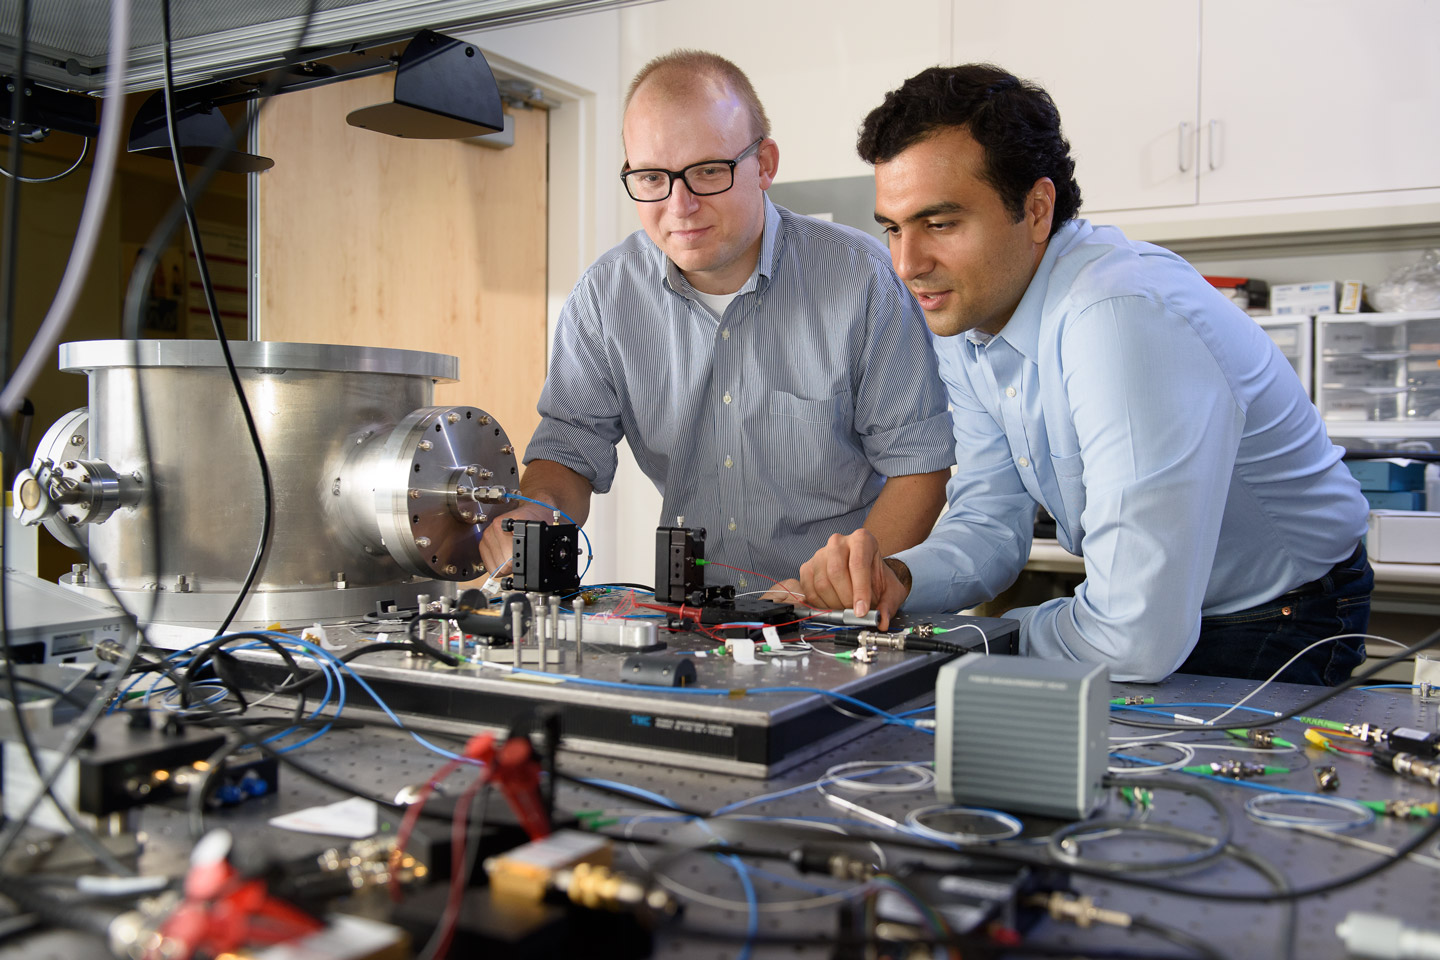 Researchers Create A New Type Of Computer That Can Solve Problems Electrical Circuits Archives Solved Post Doctoral Scholar Peter Mcmahon Left And Visiting Researcher Alireza Marandi Examine Prototype Light Based